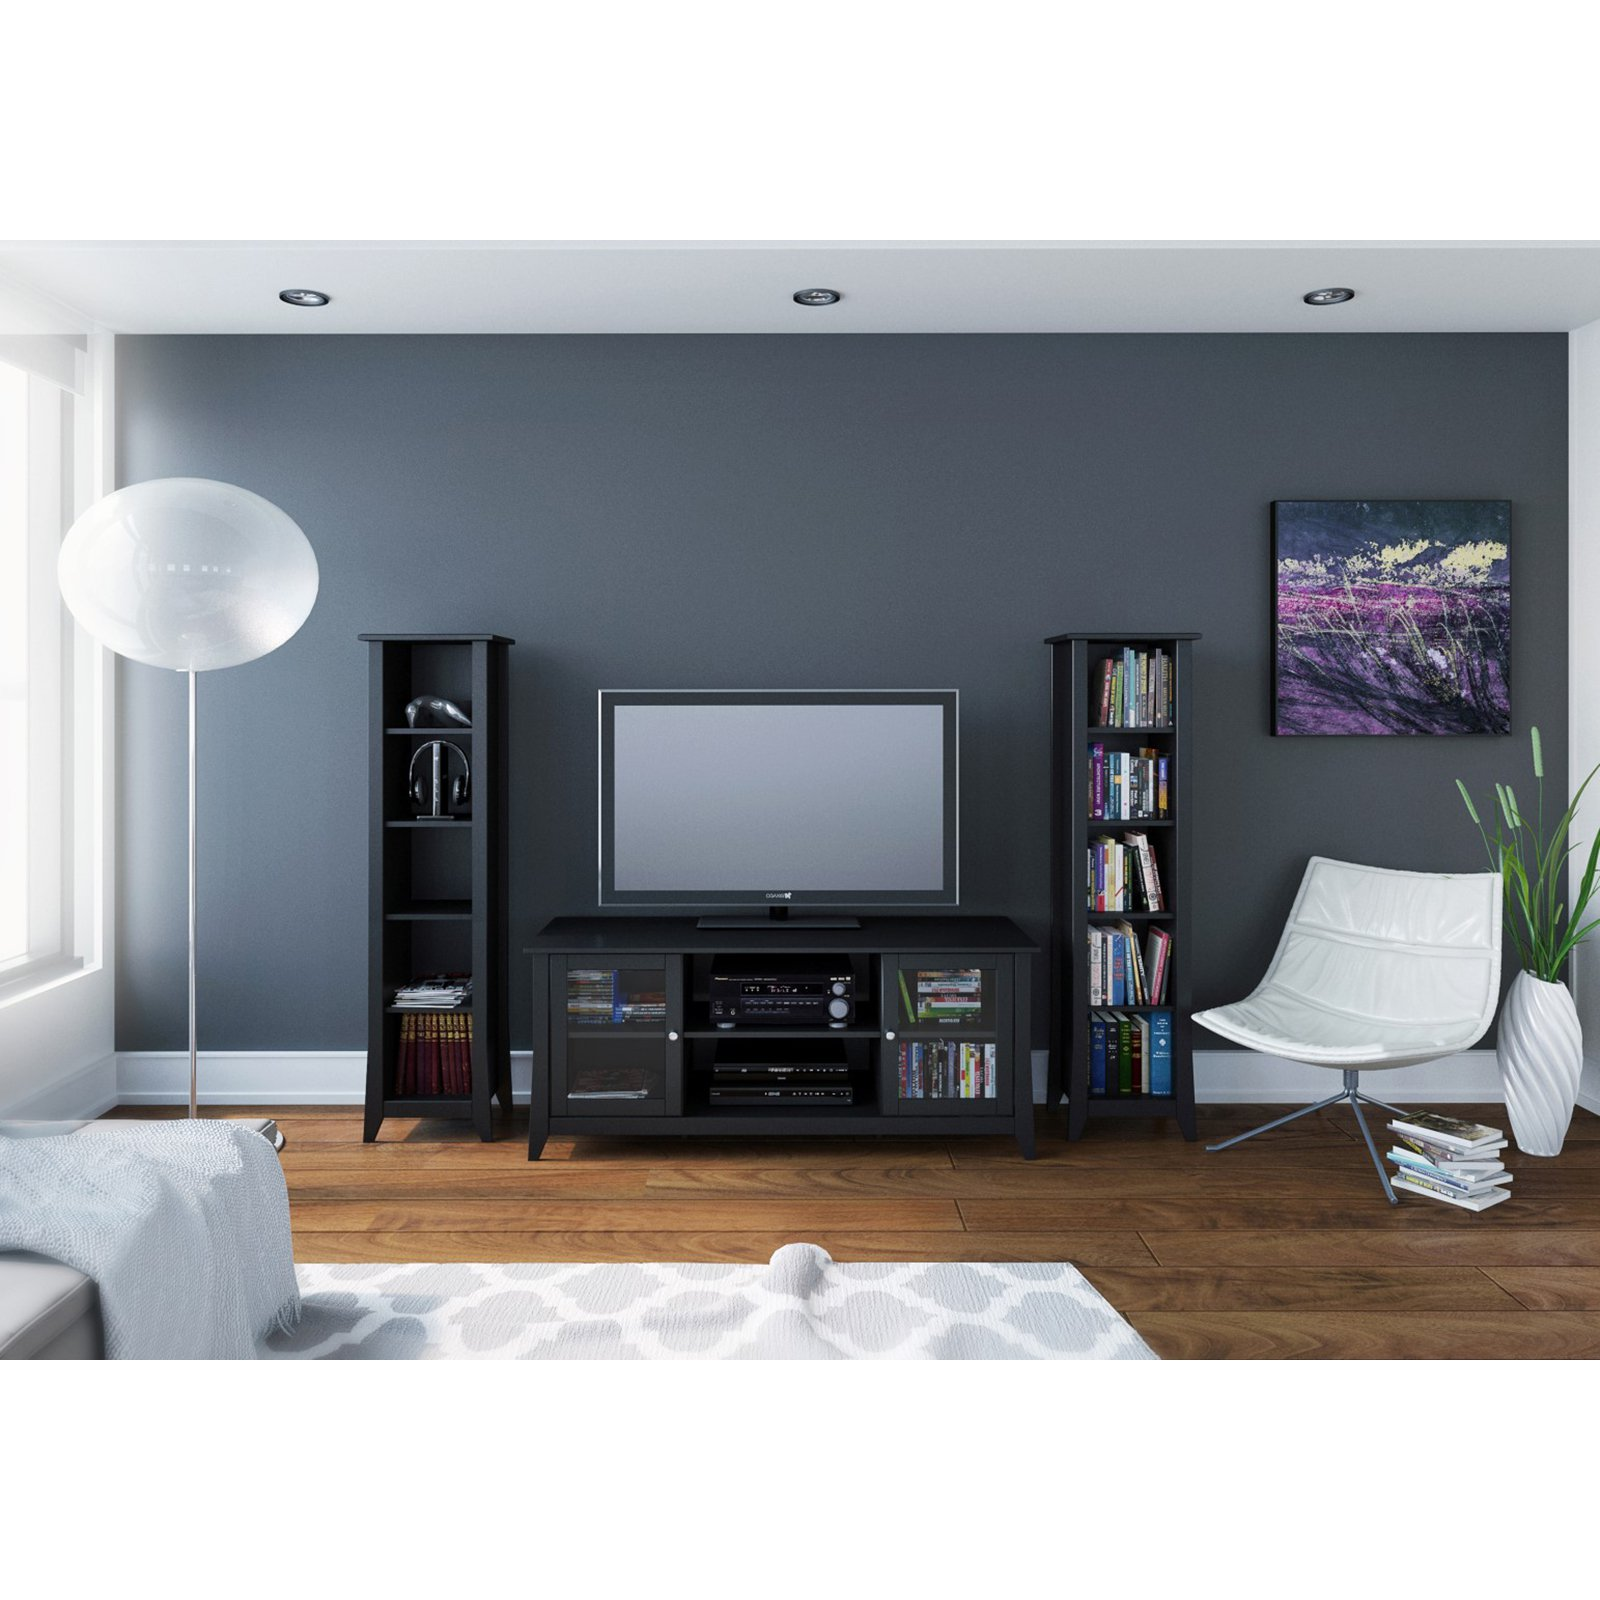 Megalak Finition Tuxedo 58 in. TV Console with 60 in. Slim Bookcases - Black